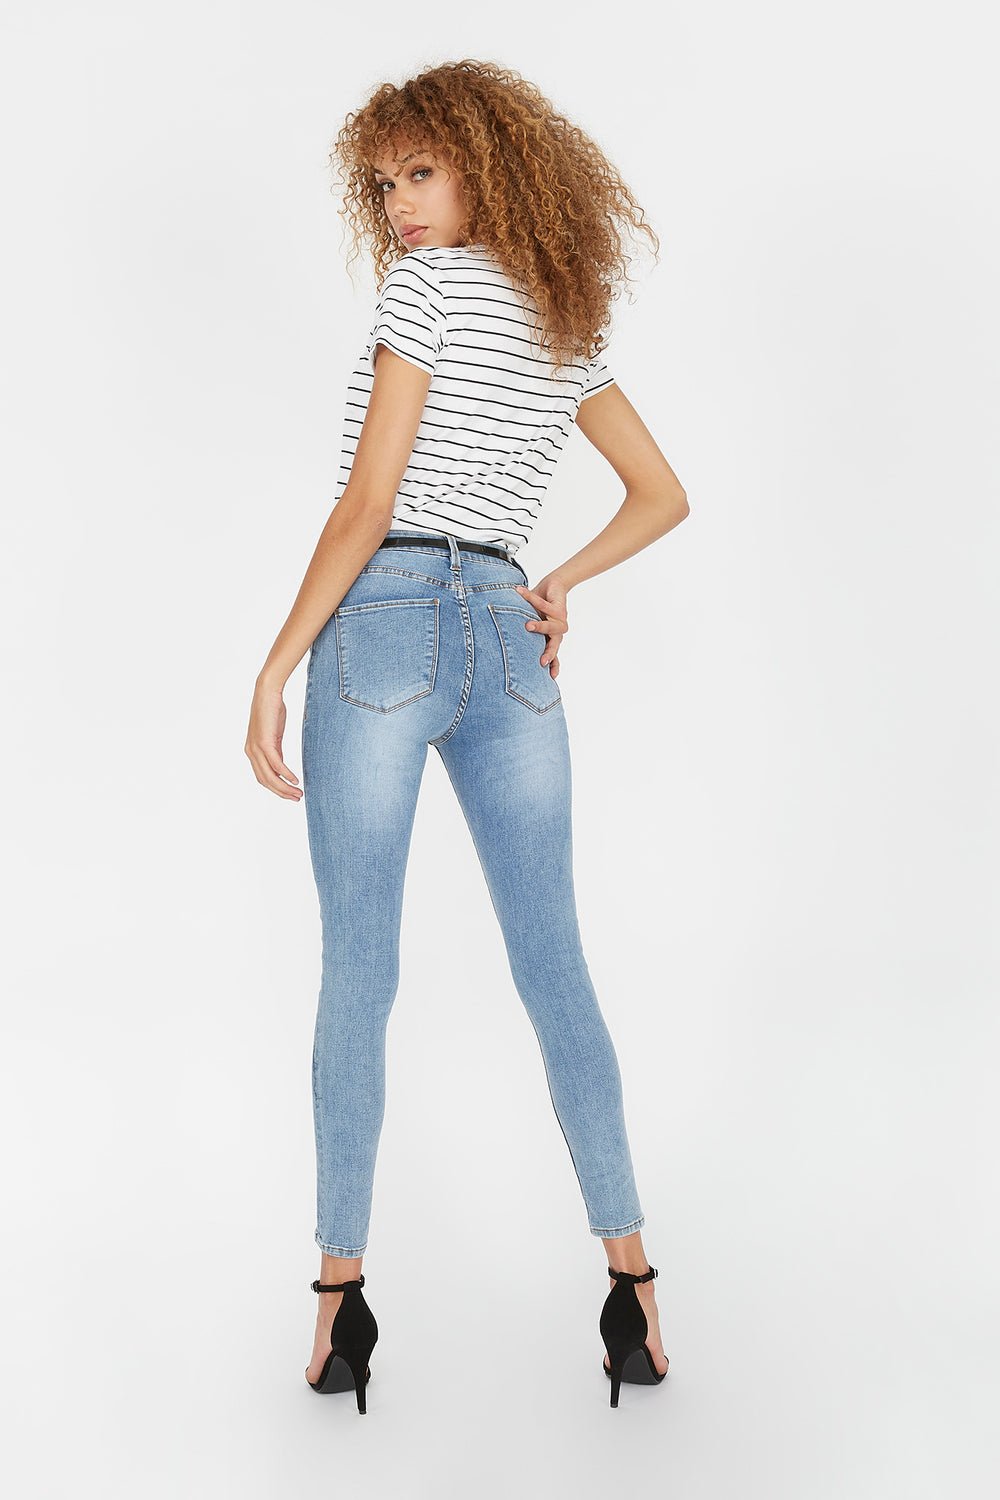 Refuge Miami High-Rise Medium Wash Super Skinny Jean Medium Blue